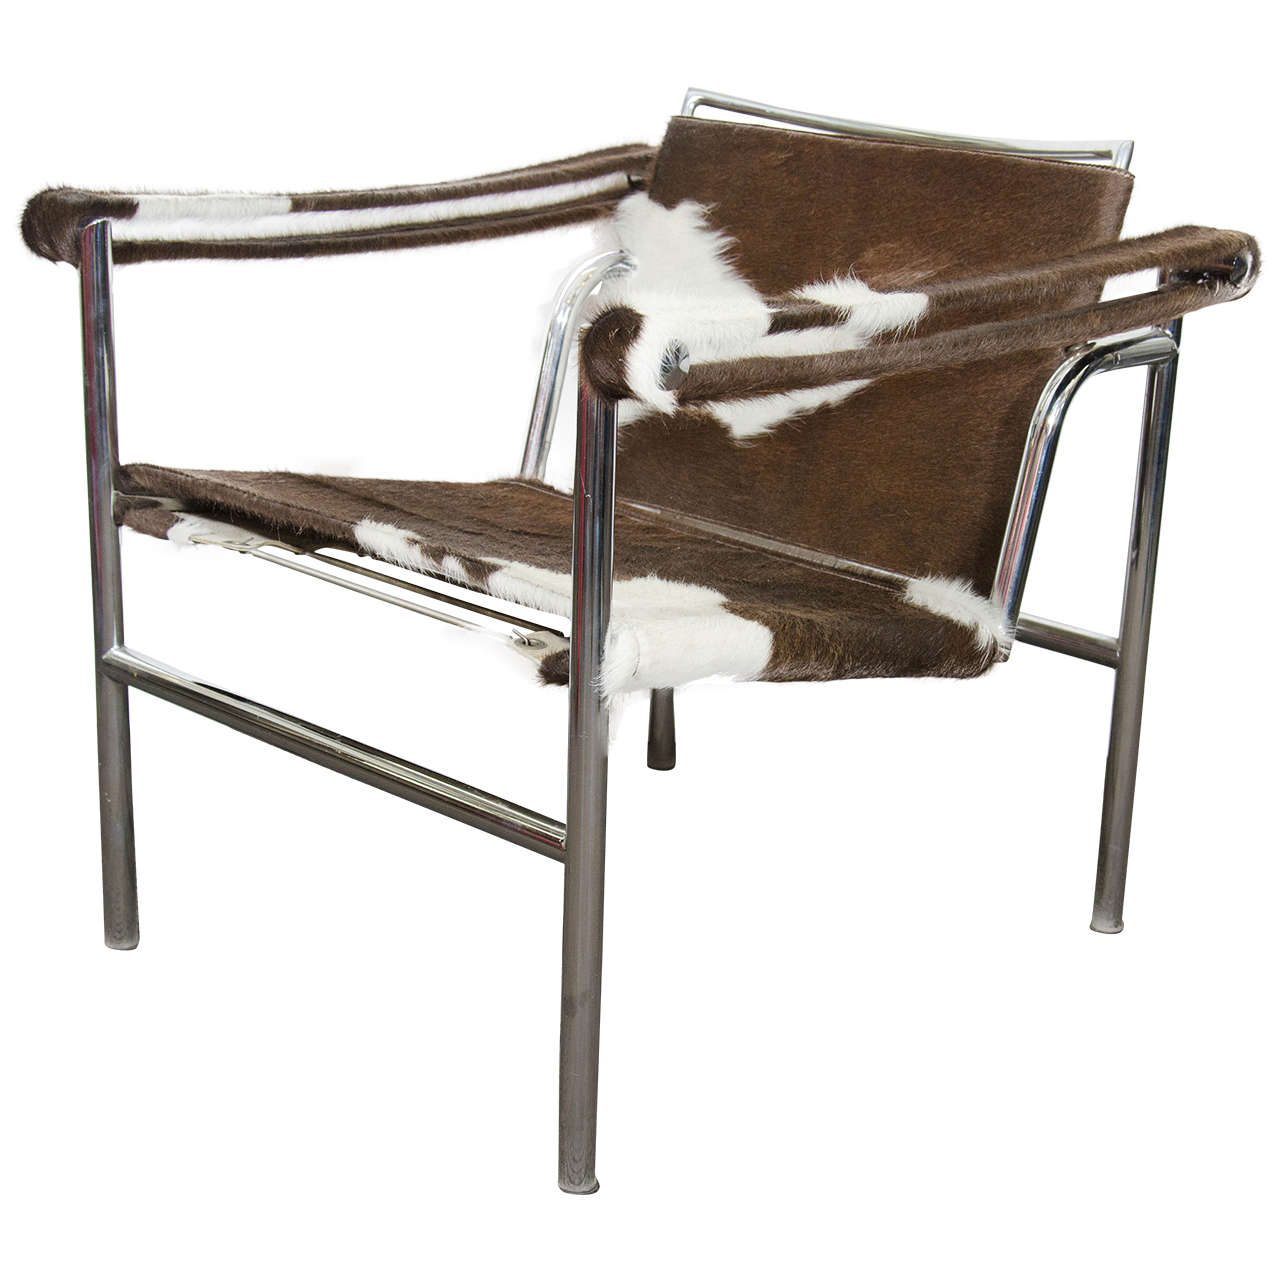 Midcentury Le Corbusier Sling Chair Newly Reupholstered In